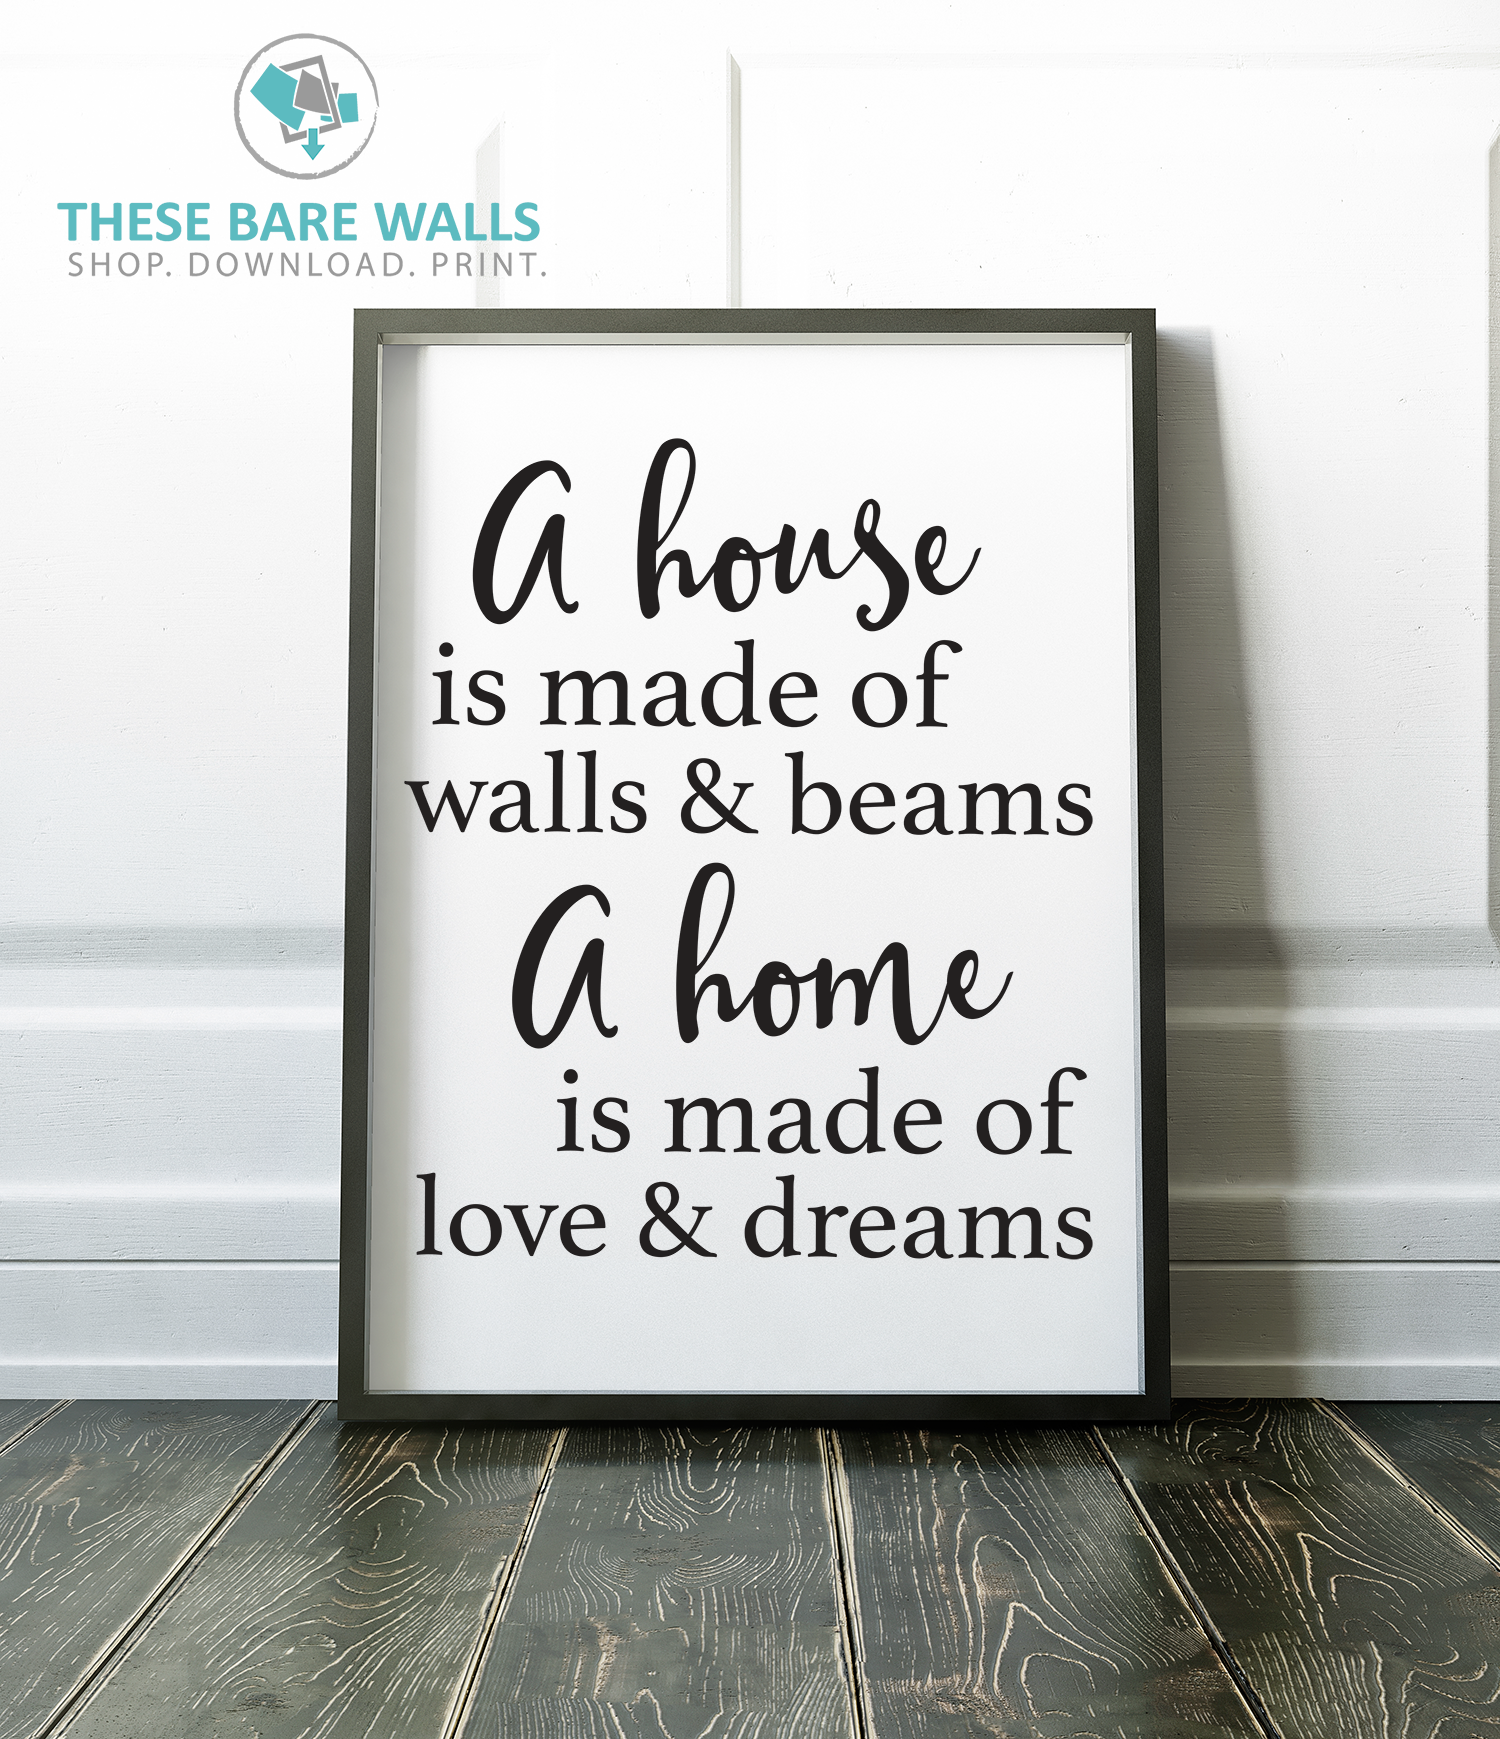 Decorative Signs For Your Home: A House Is Made Of Walls & Beams, A Home Is Made Of Walls